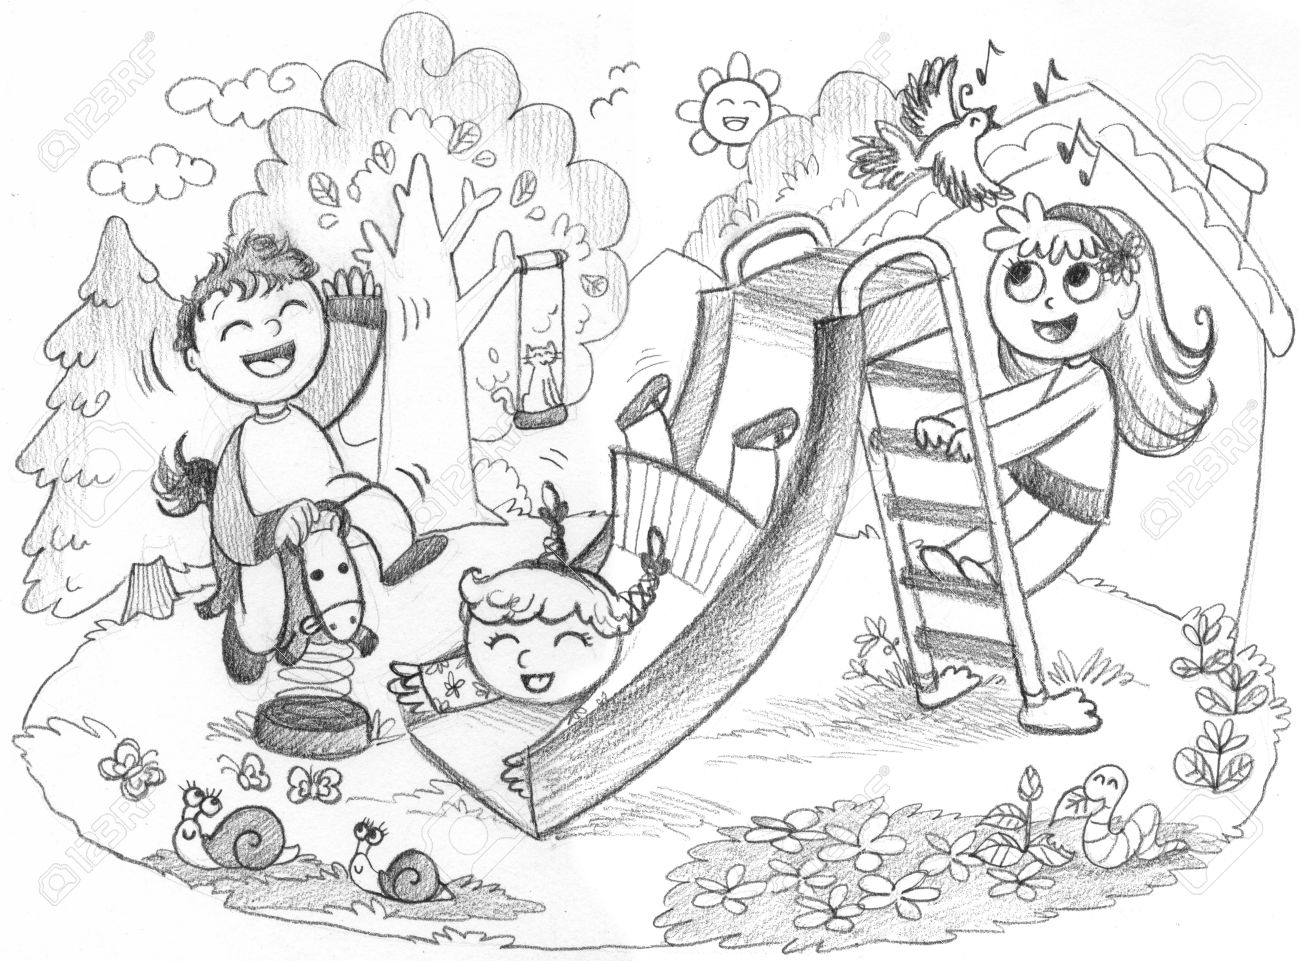 1300x961 Playground In The Country 3 Happy Kids Playing Together Pencil